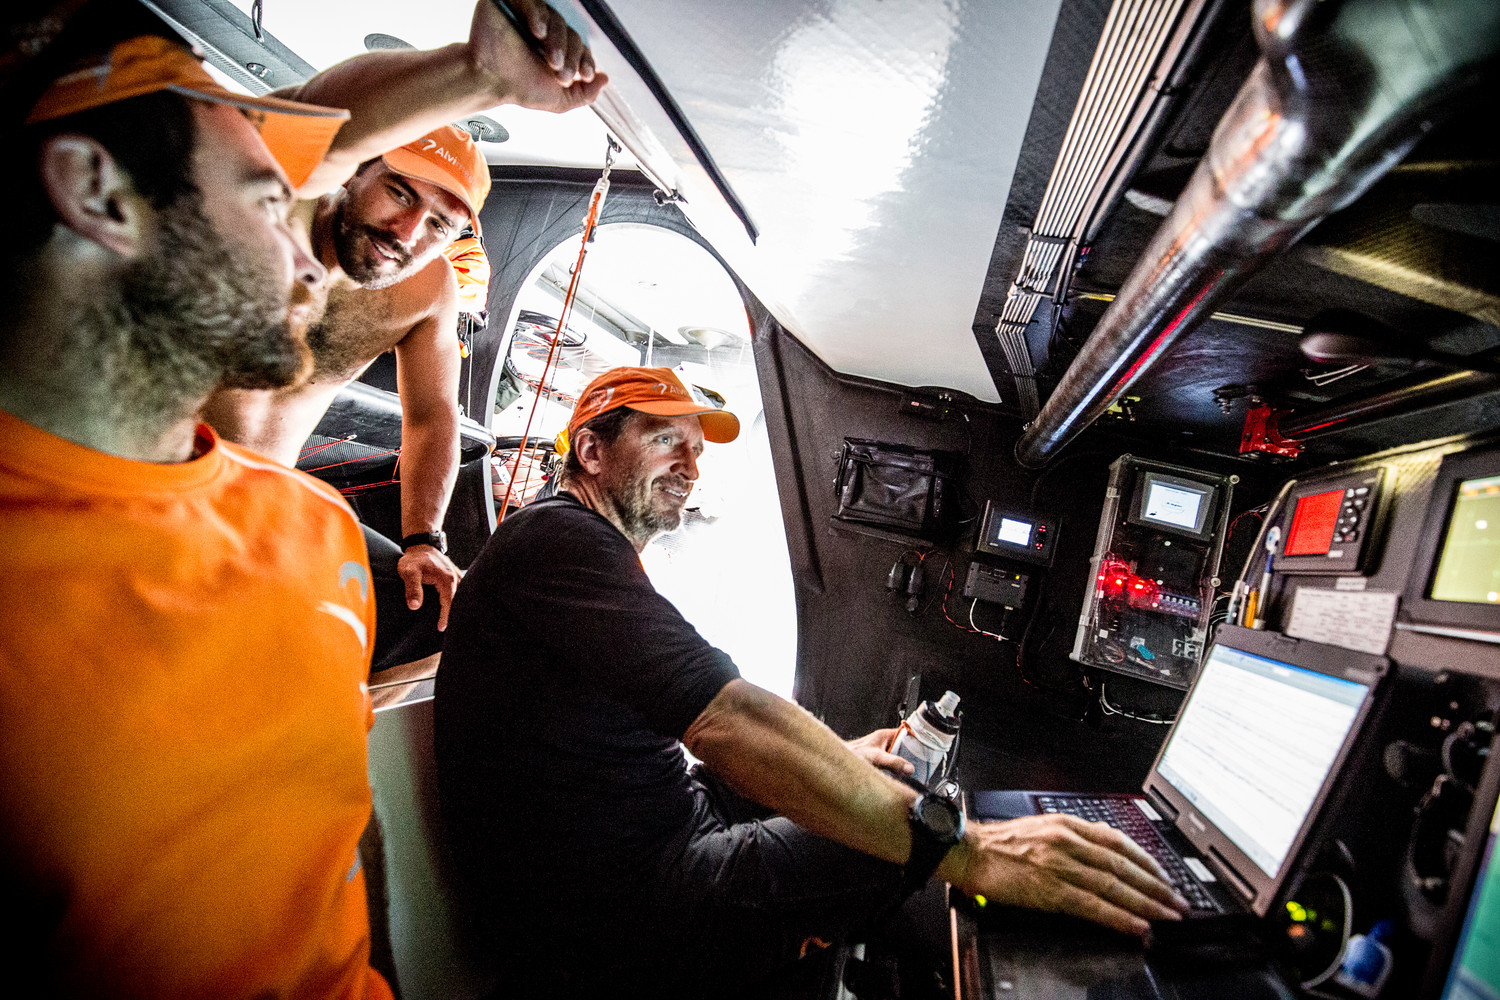 Skipper Charlie Enright (L), watch captain Mark Towill (M), and navigator Will Oxley (R) discuss the timing of the turn south.